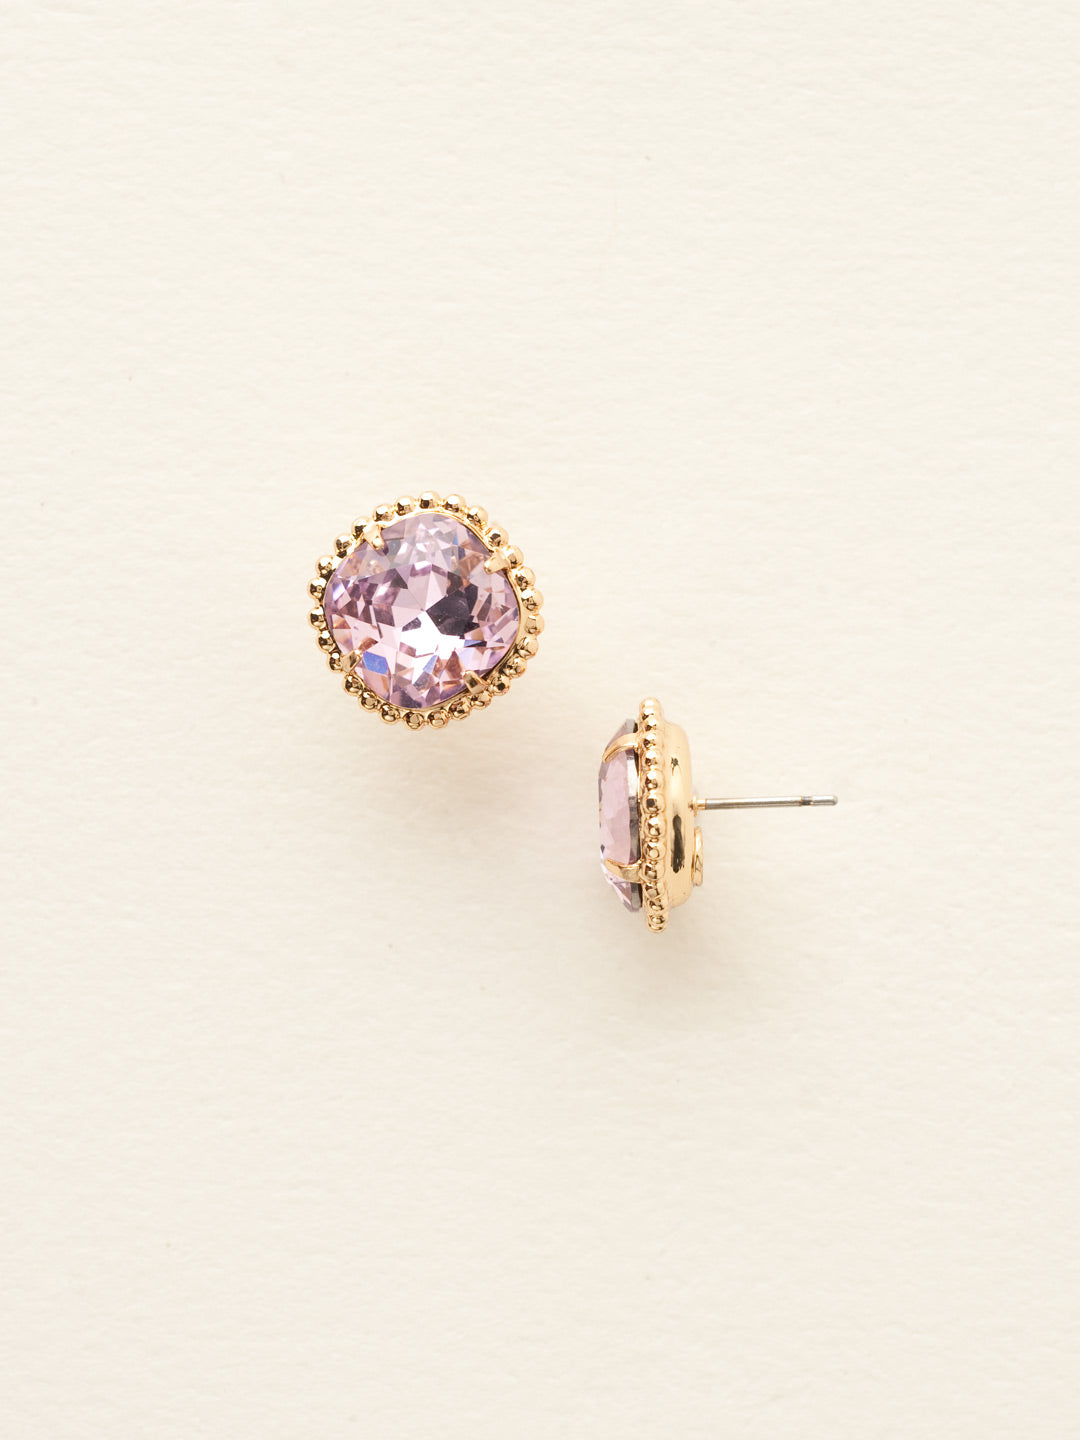 Cushion-Cut Solitaire Stud Earrings - EBX10BGLTR